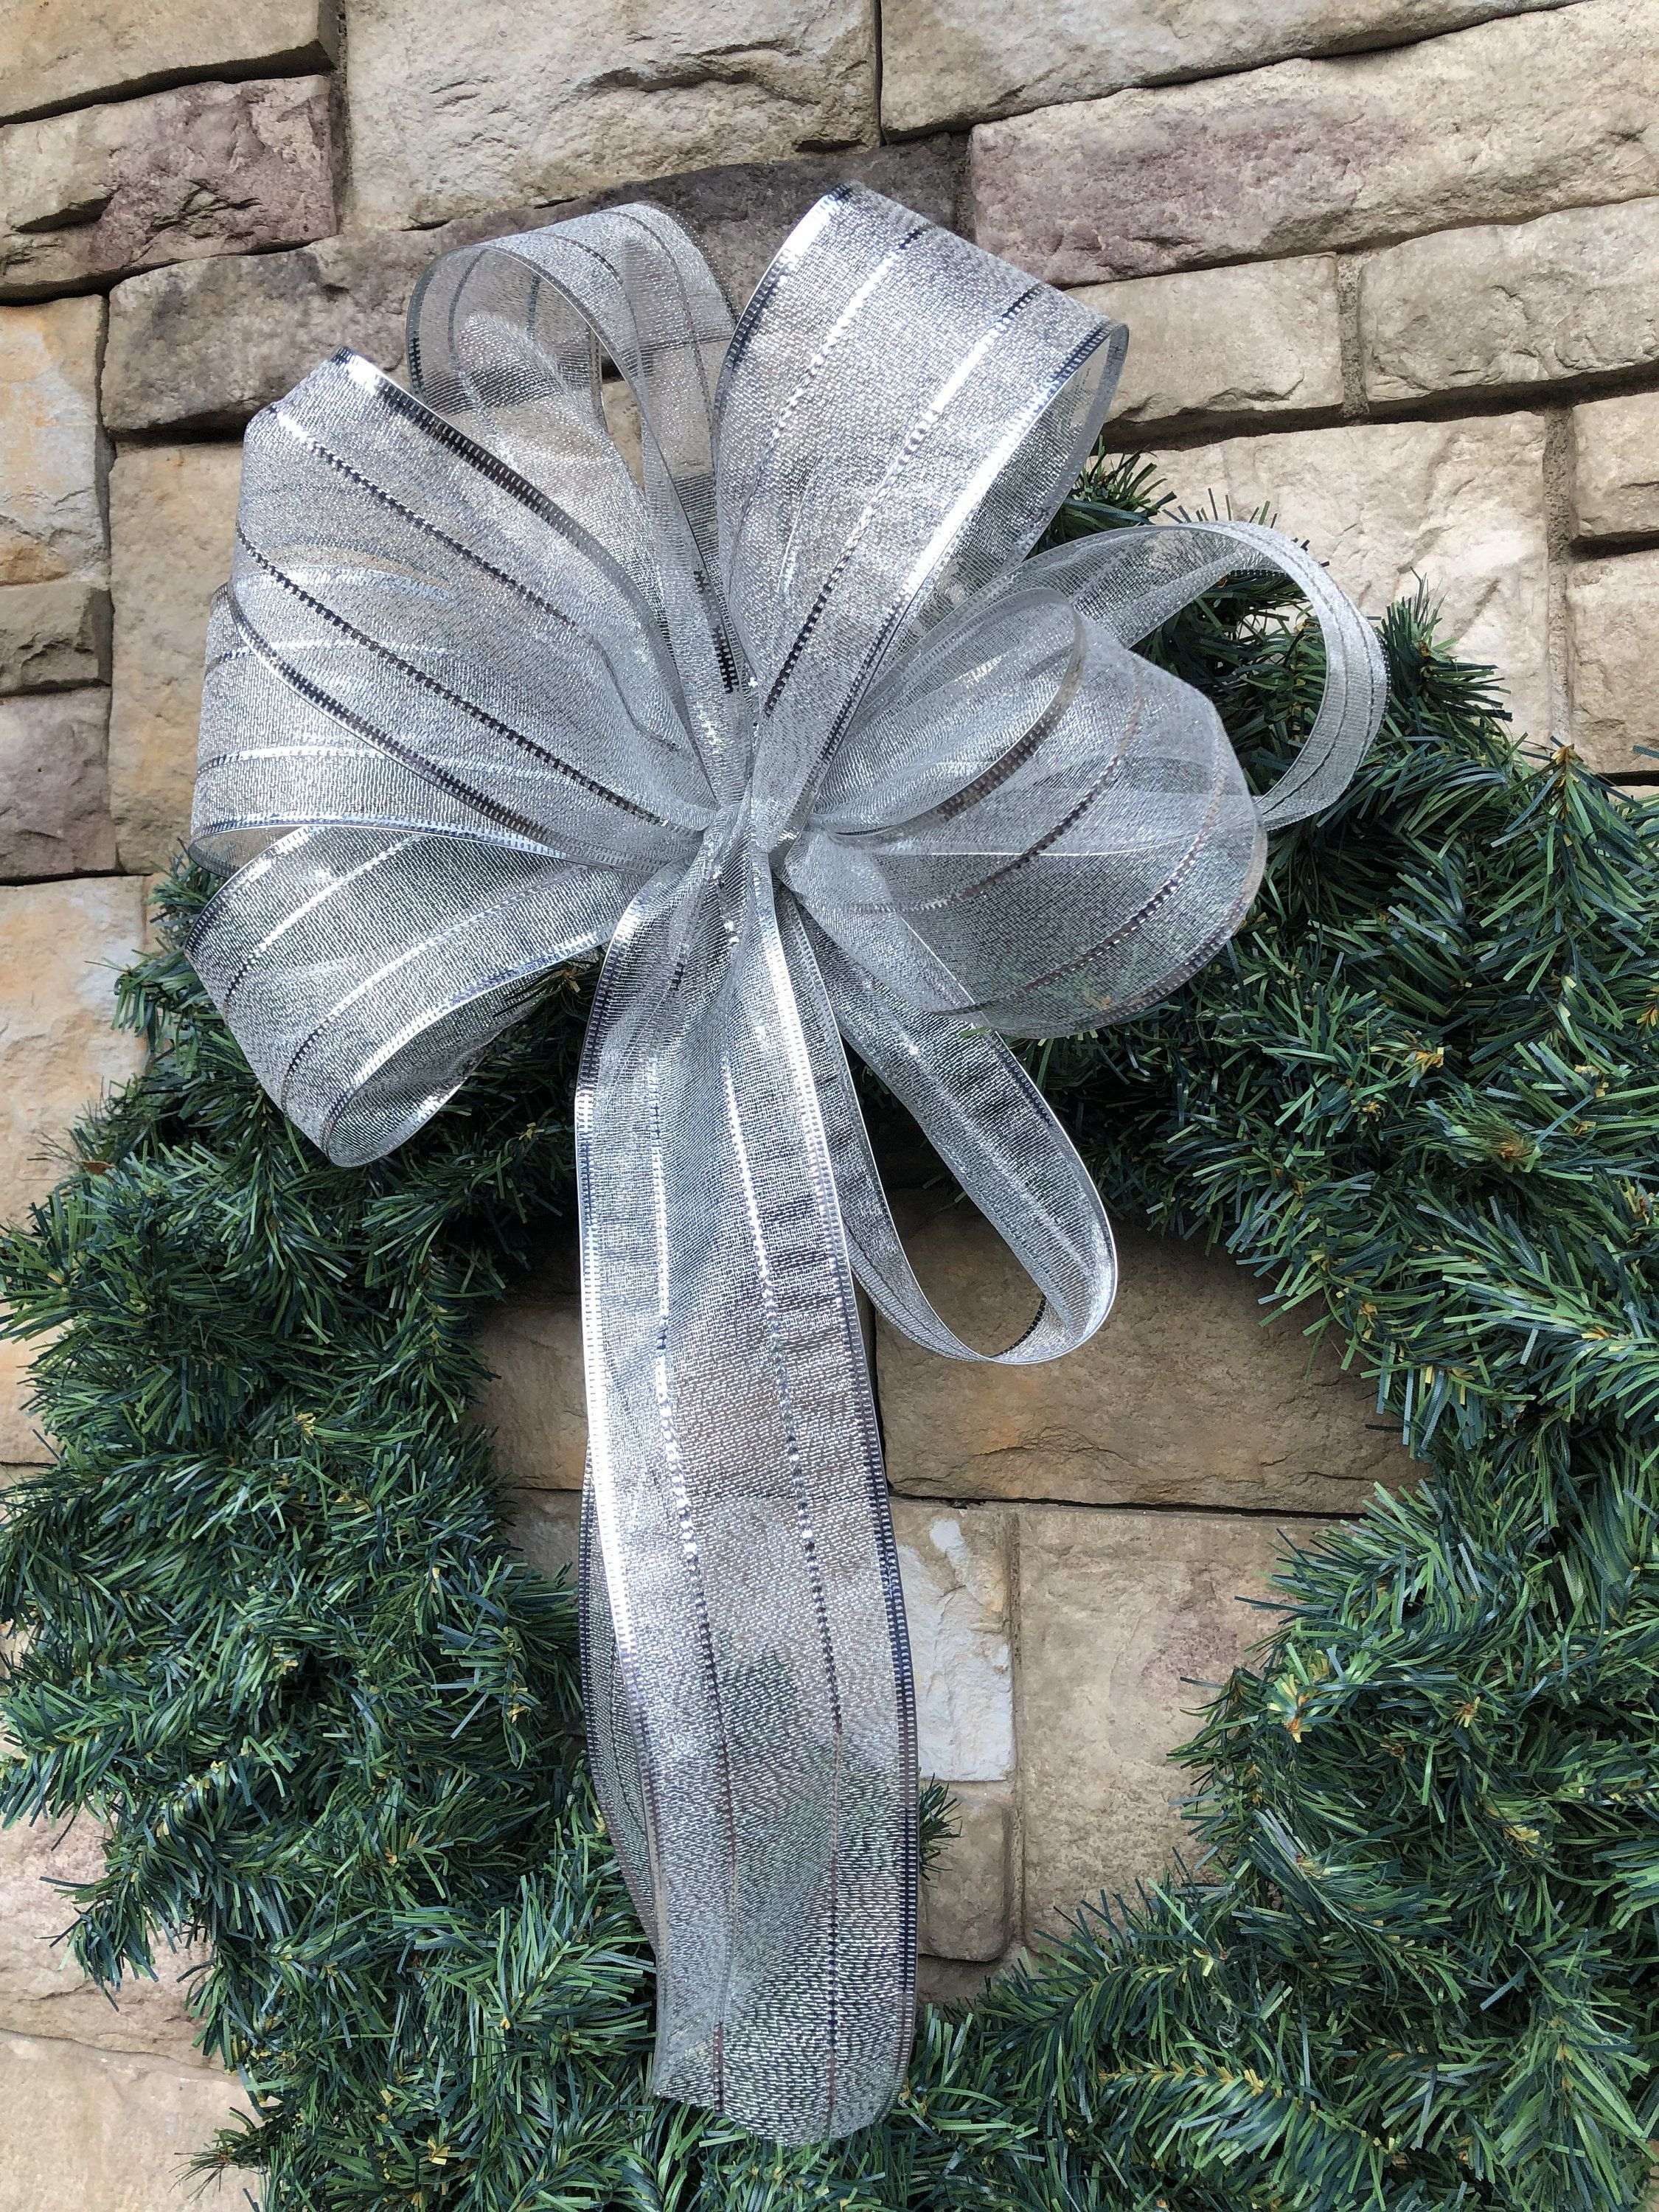 4 Large Silver Sheer Bow Wired Christmas Silver Bows Bow 3 Yards Of Silver Ribbon 6 Yar Christmas Wreath Bows Ribbon On Christmas Tree Turquoise Christmas Tree